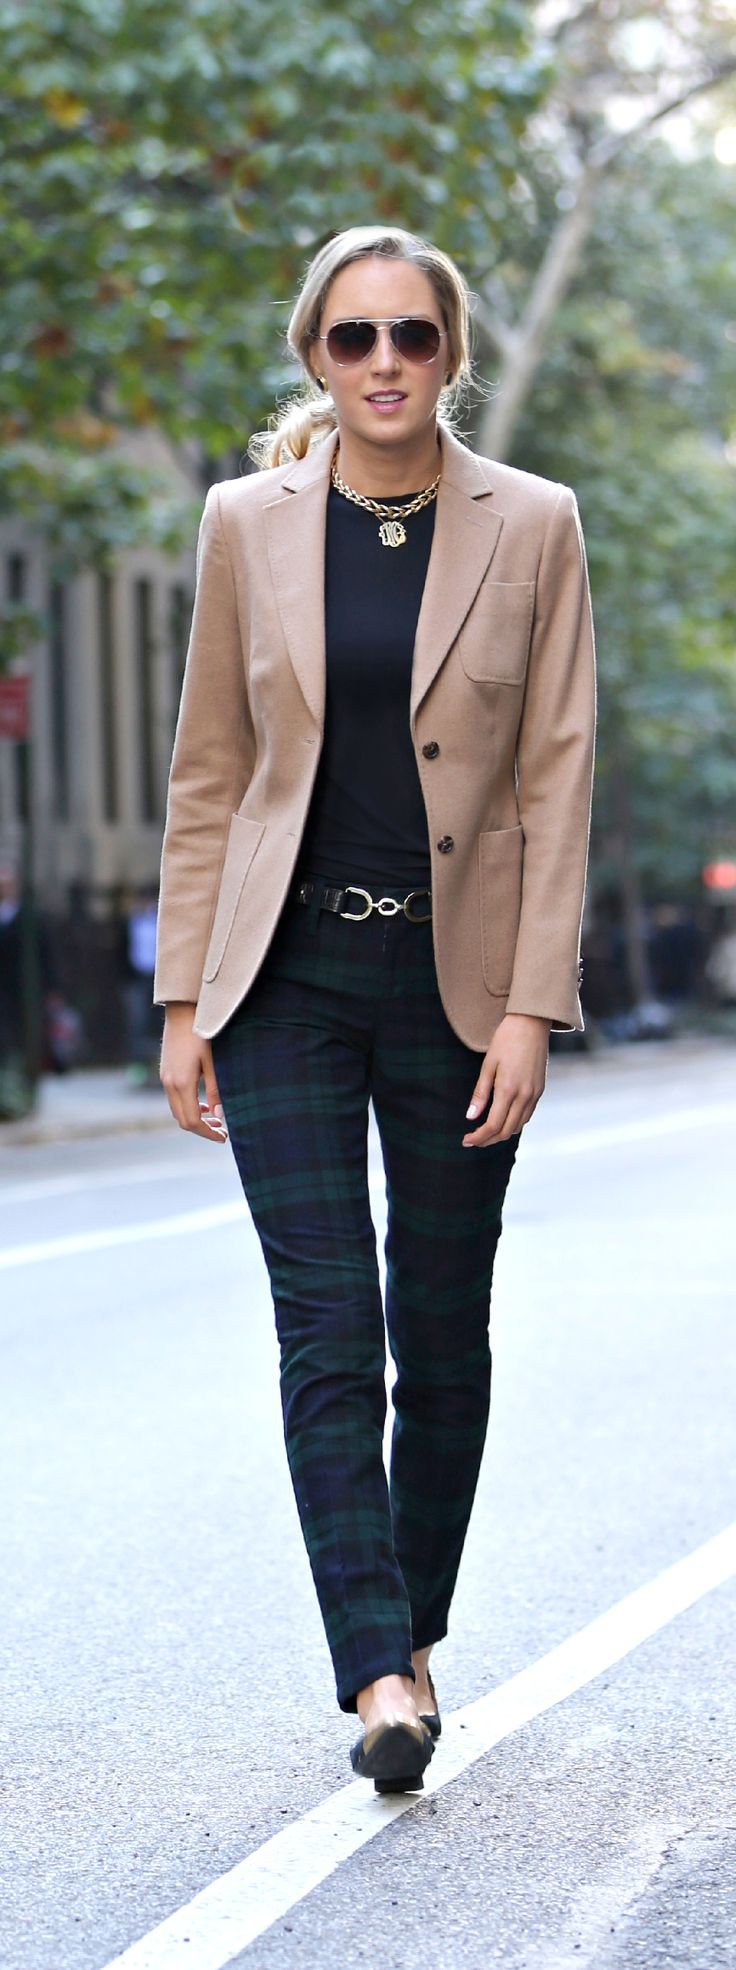 Best 20 young professional clothes ideas on pinterest young work outfit women 39 s professional - Brooks brothers corporate office ...